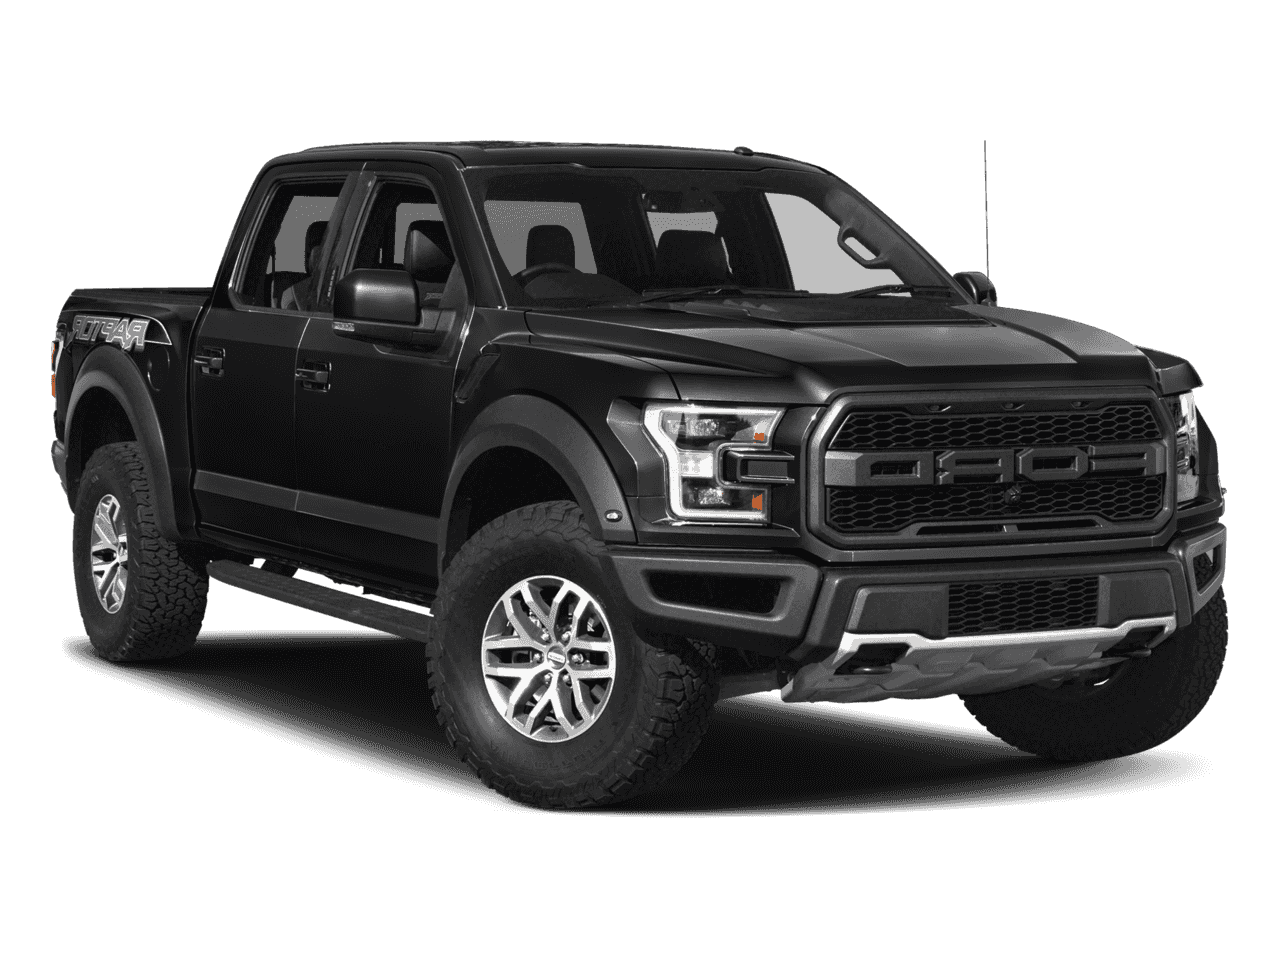 New 2018 Ford F 150 Raptor 4d Supercrew In San Jose Cfd11614 1955 F100 White 4x4 With Navigation 4wd